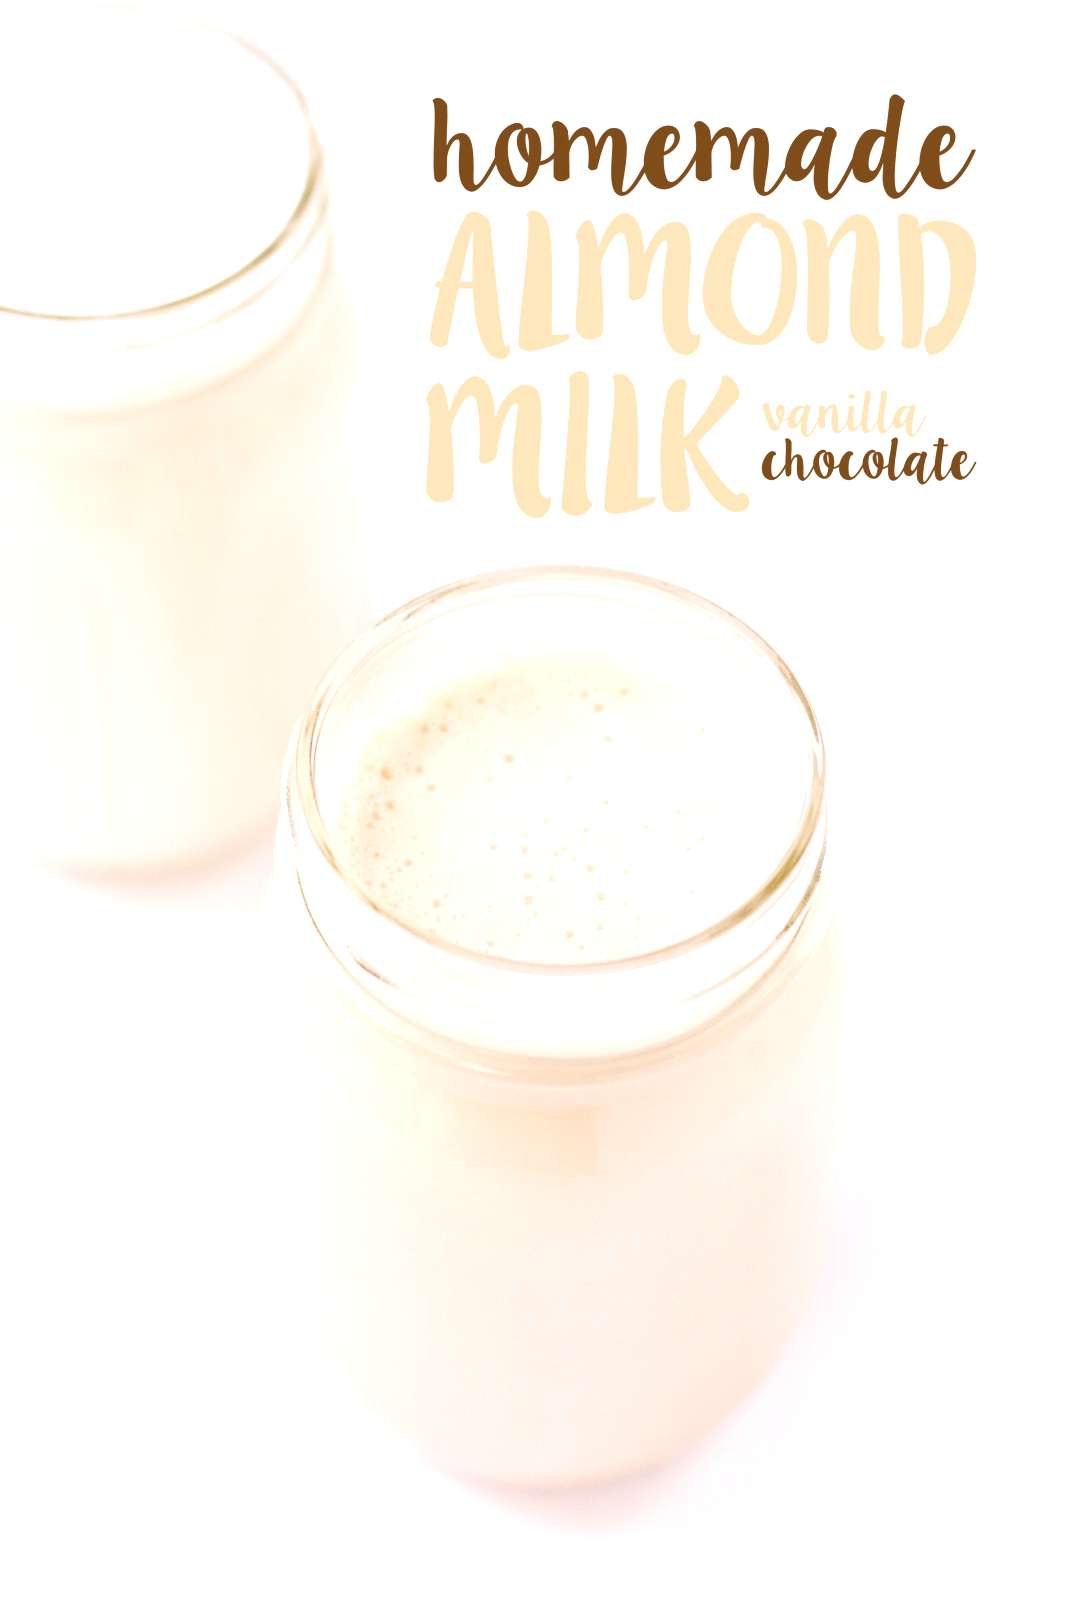 Vanilla + chocolate almond milks made at home in minutes using simple, wholesome ingredients. You'l